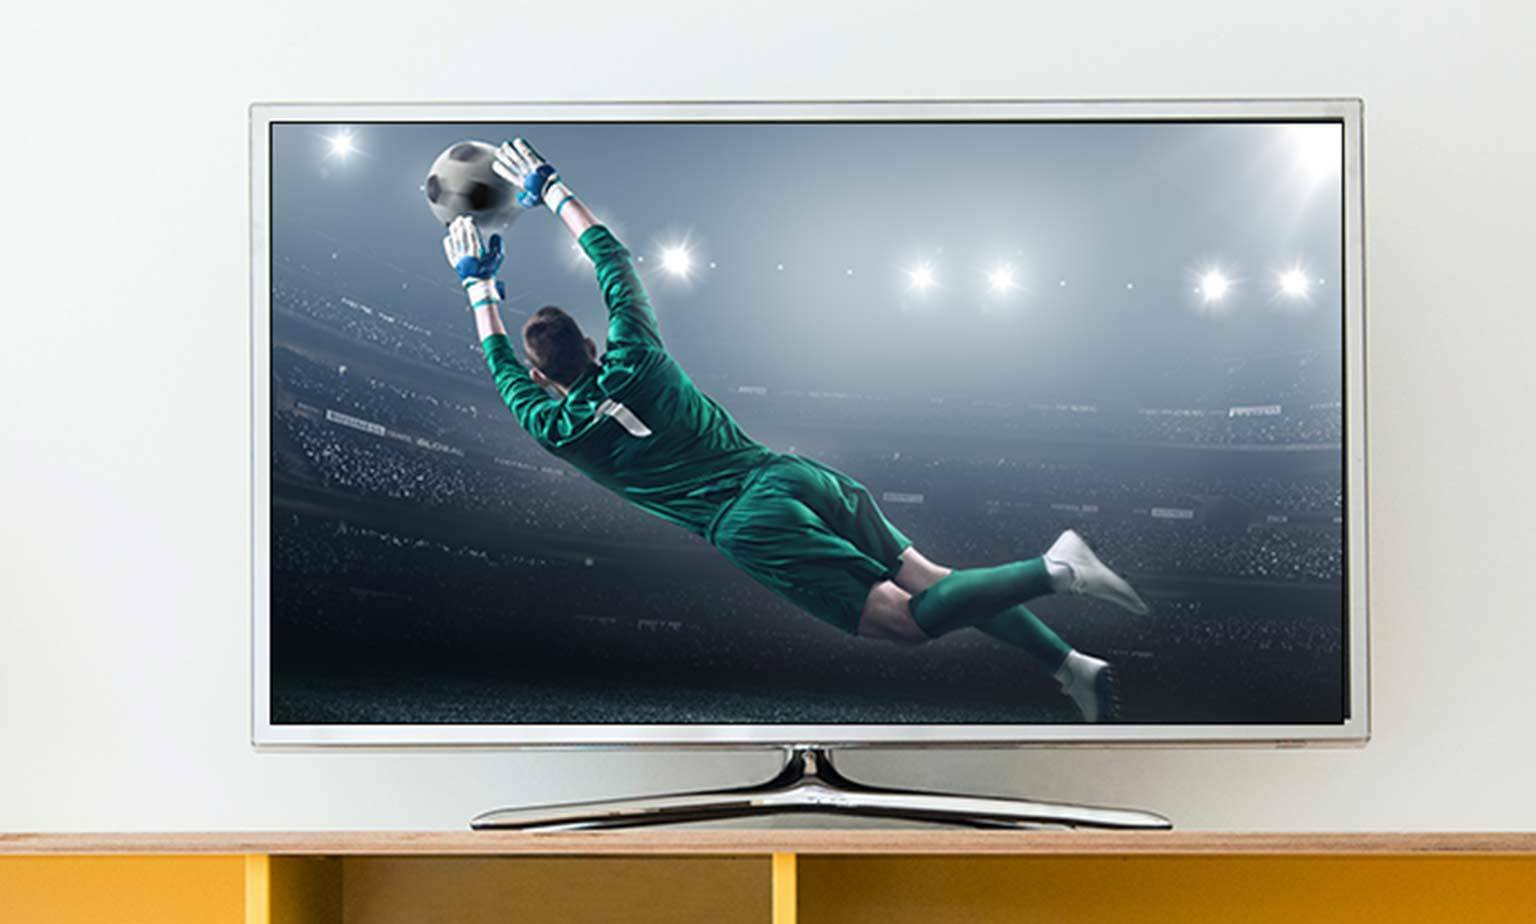 Up to 20% off TVs from Currys